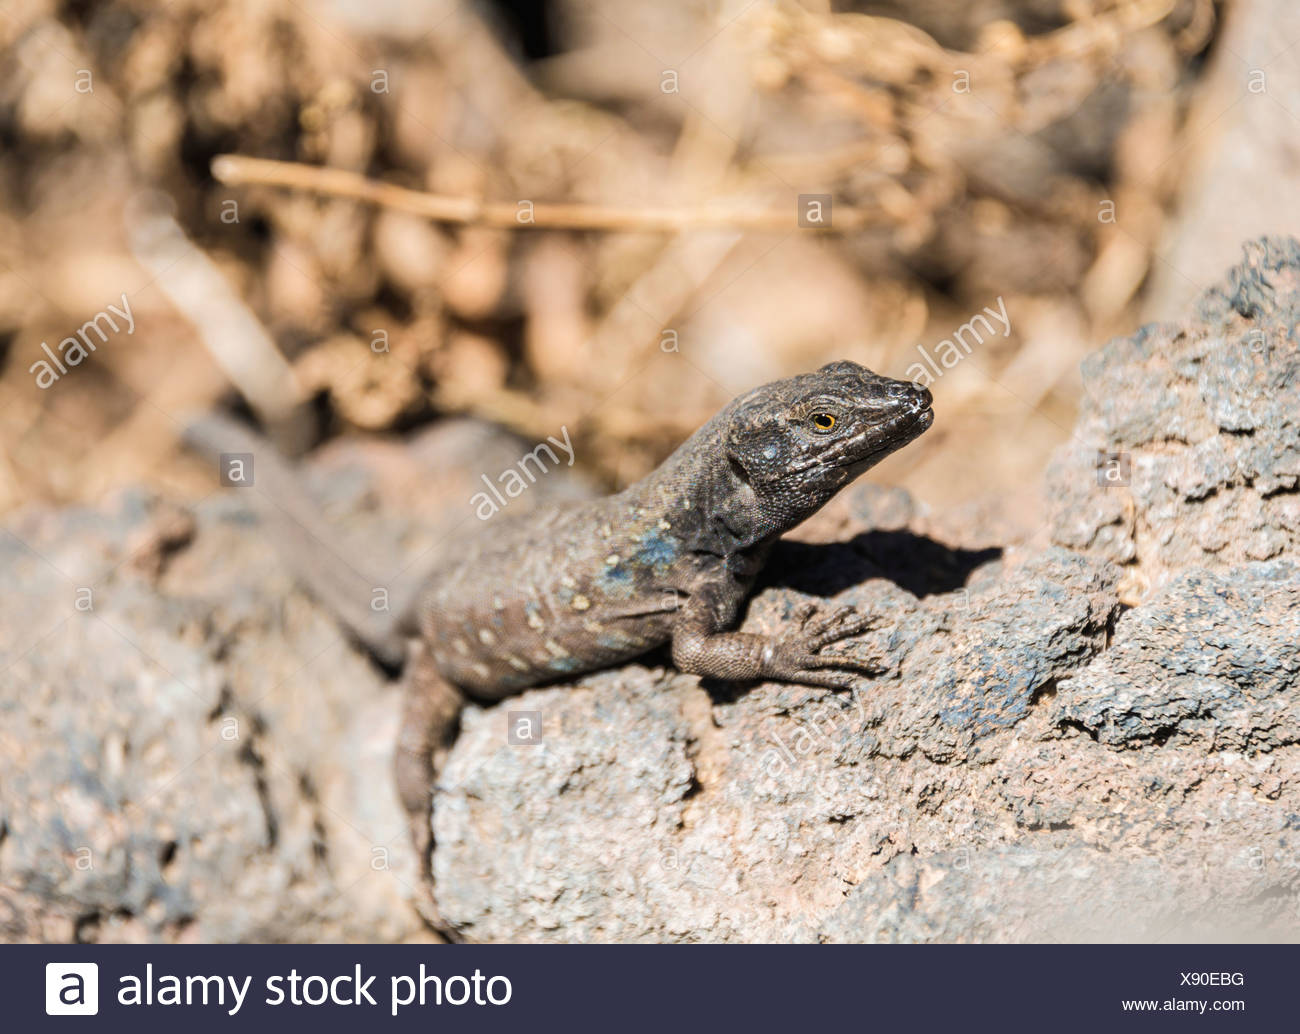 Tenerife Lizard (Gallotia galloti) basking on a rock, endemic to the Canaries, Tenerife, Canary Islands, Spain - Stock Image